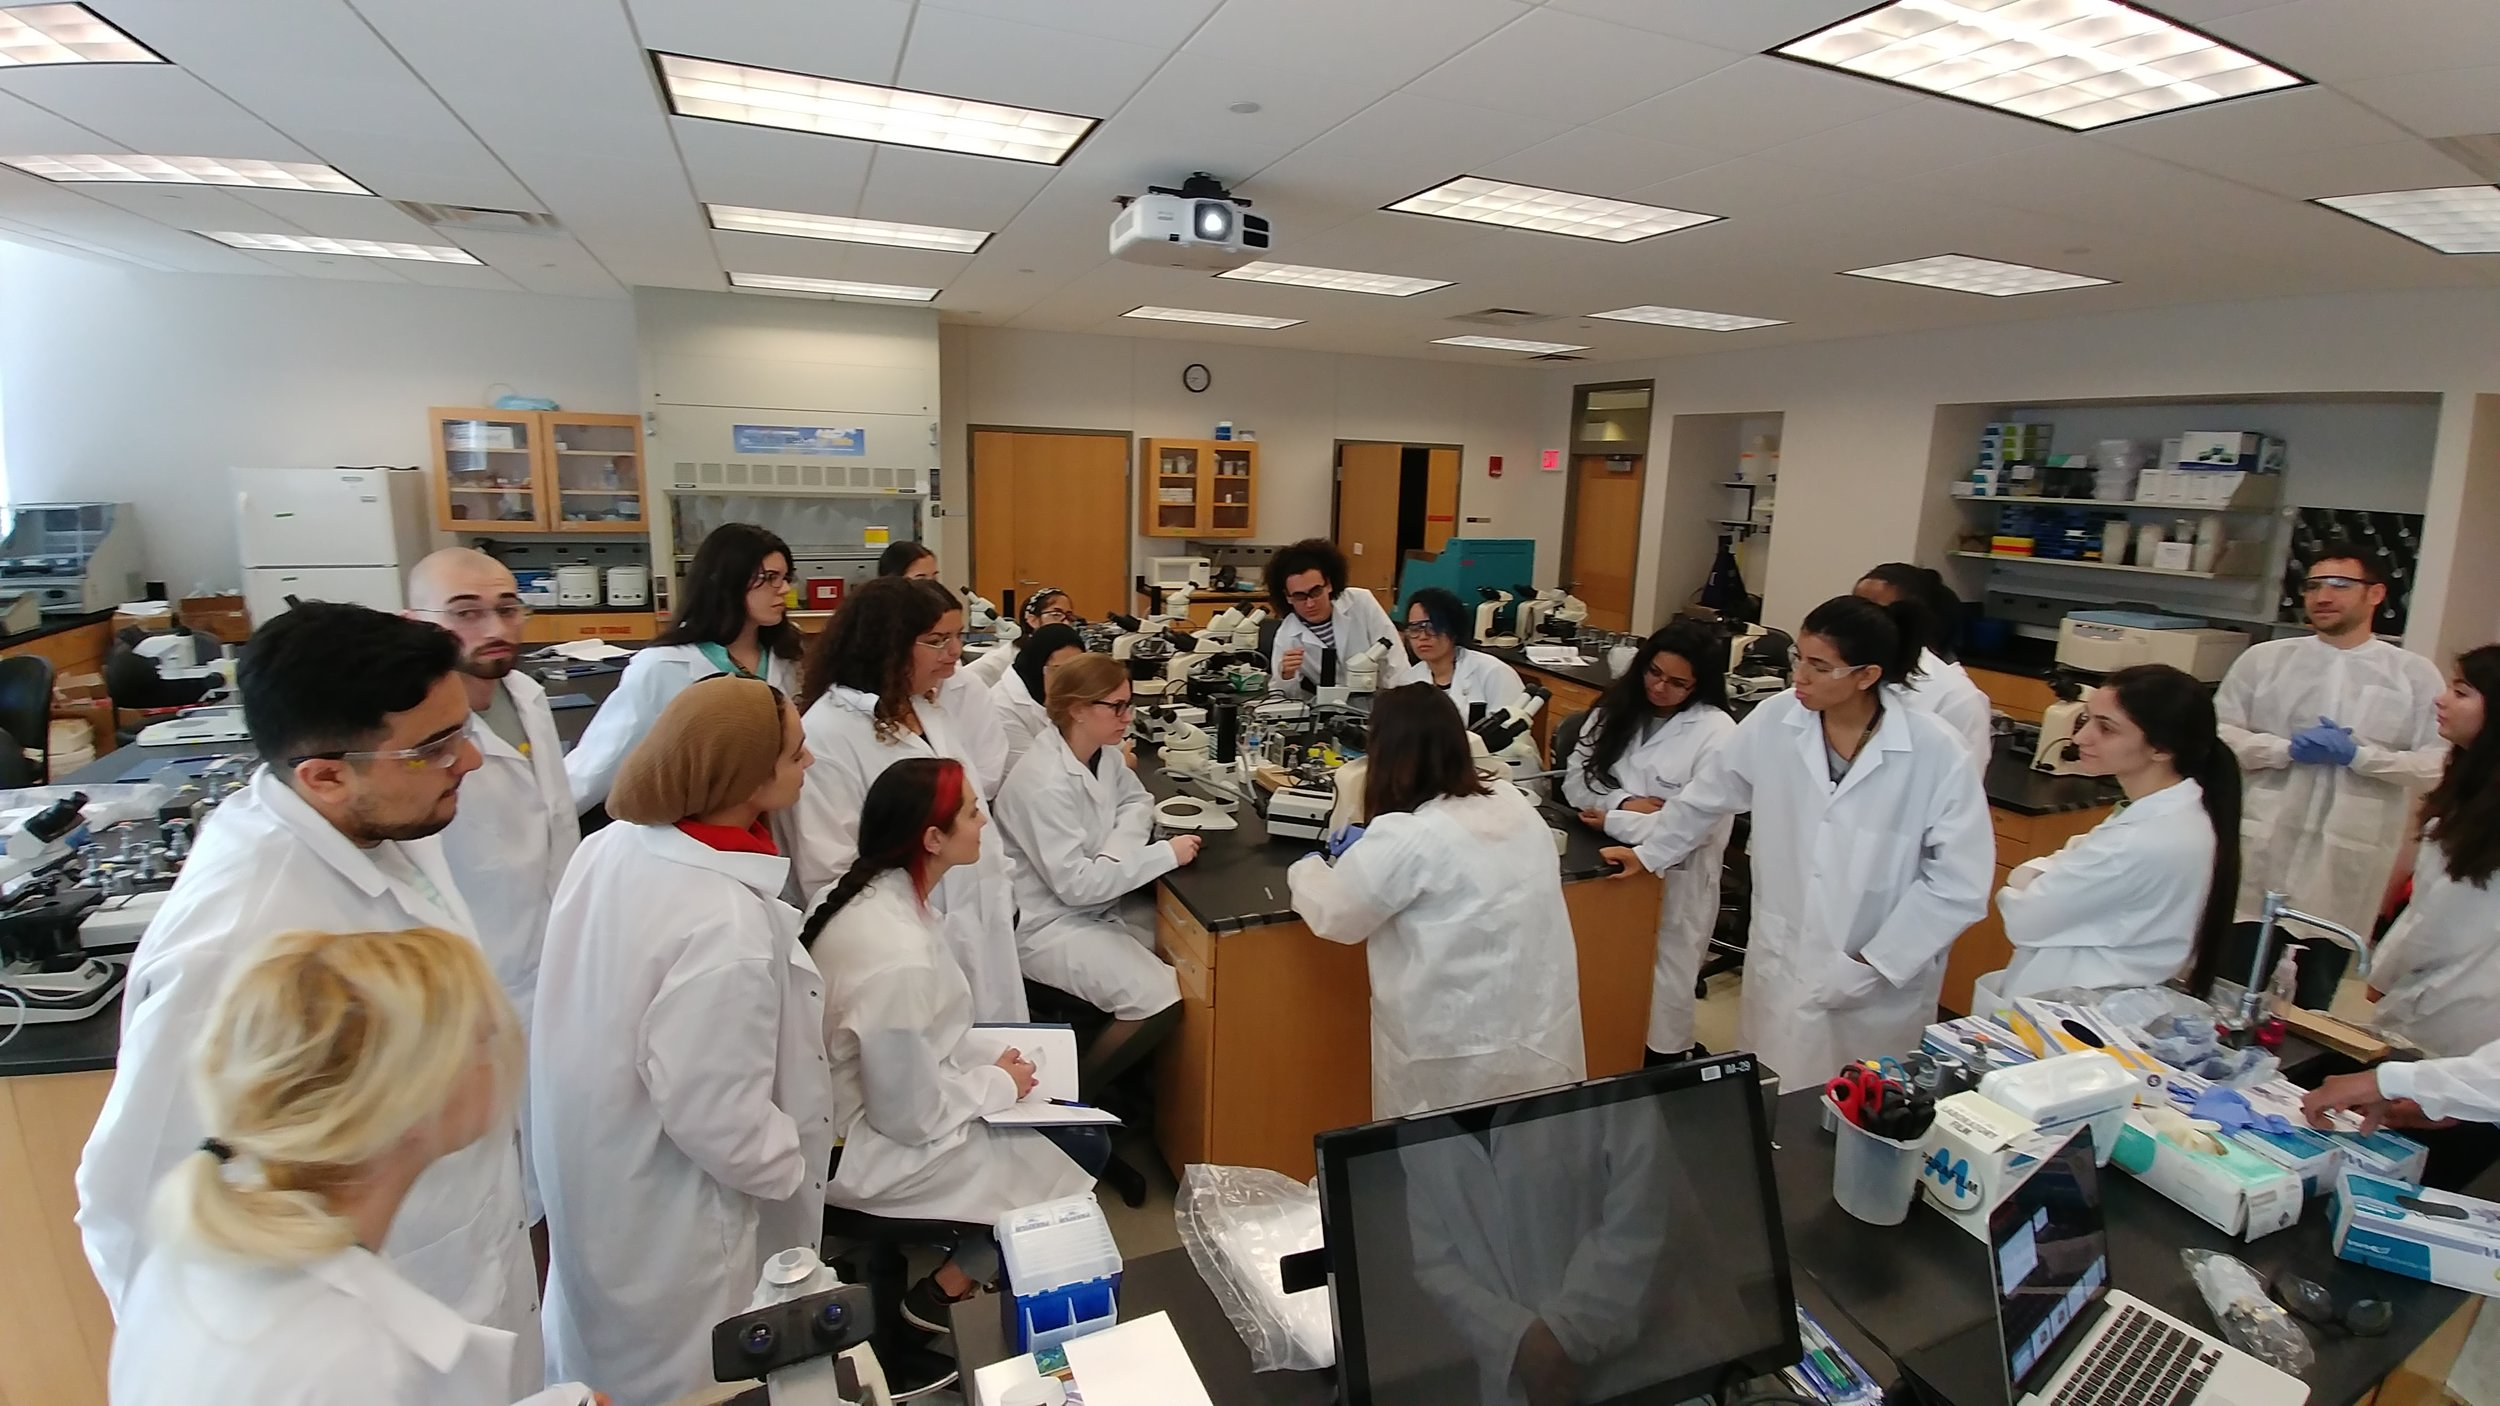 Hands-On Labs - Expand your laboratory research skills in a fully-functional developmental biology laboratory. Gain an in-depth understanding of the cutting-edge techniques and model organisms used in modern research labs.